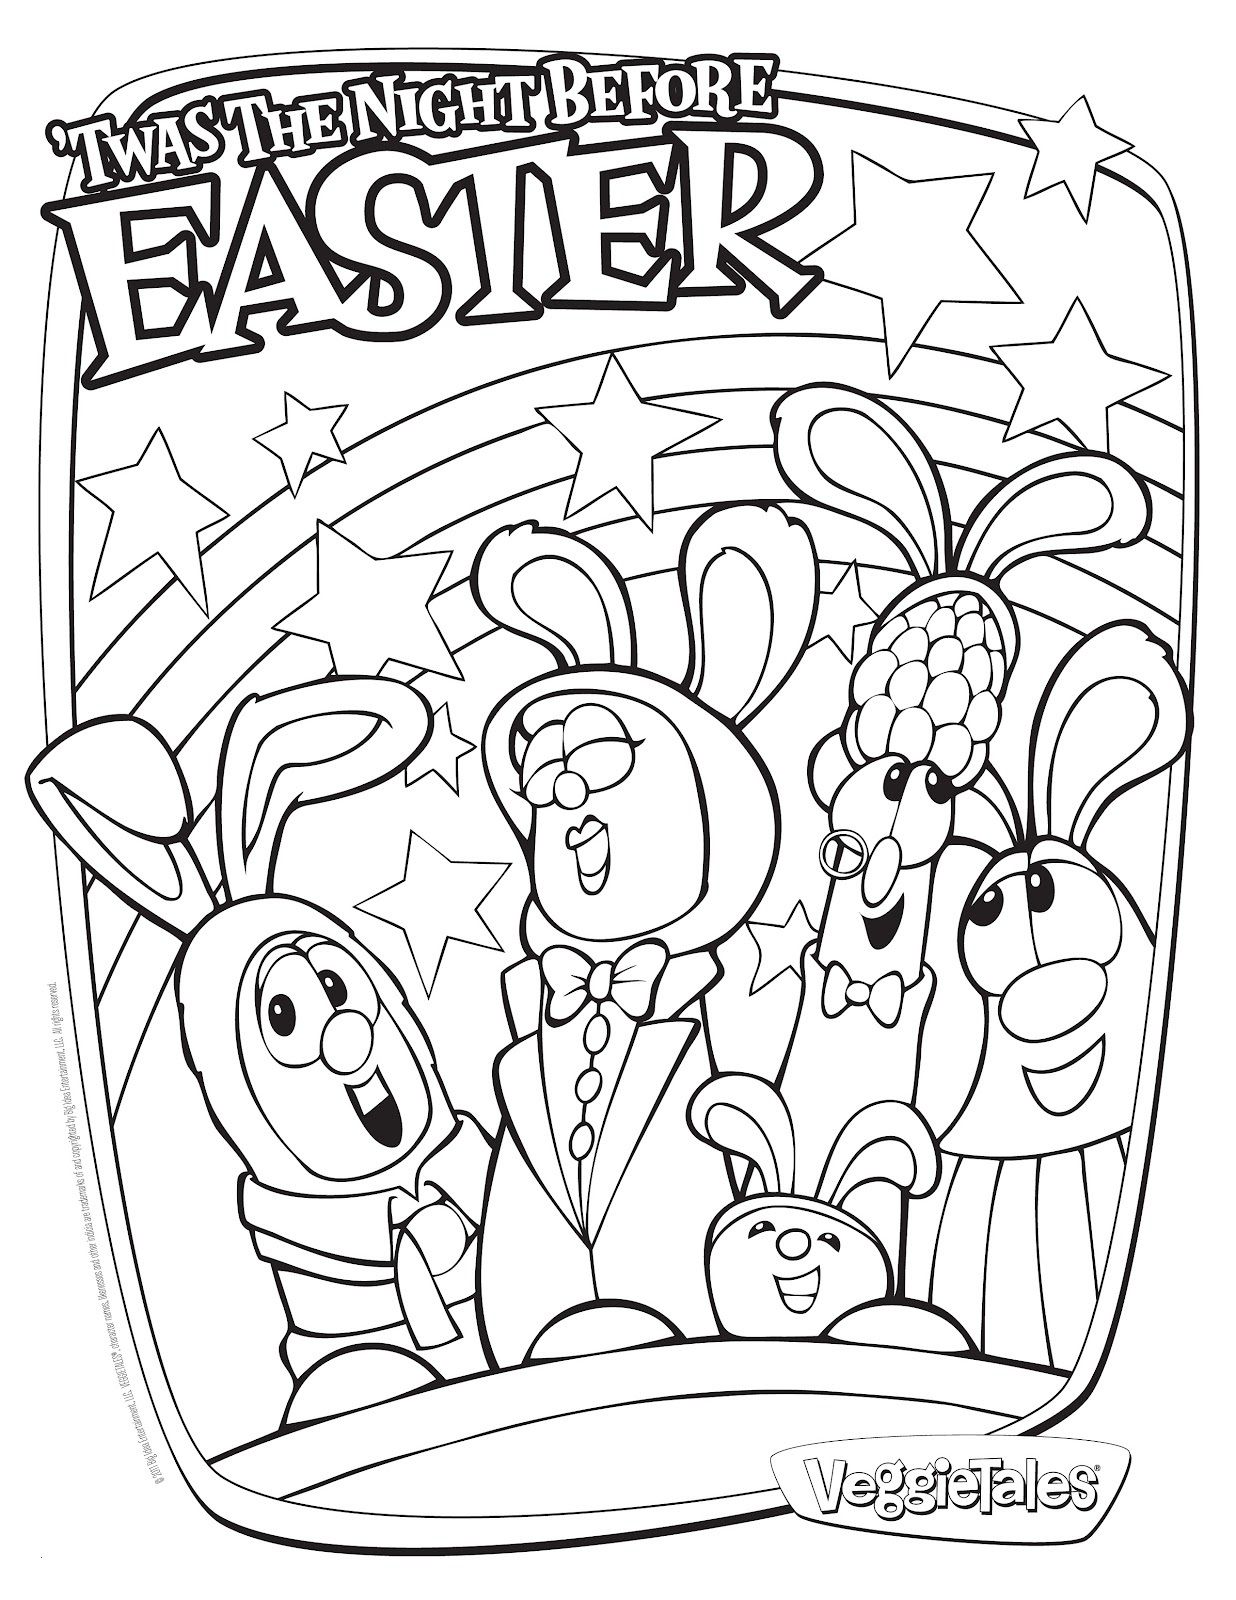 coloring pages jesus Download-Jesus with Children Coloring Pages Coloring Pages Jesus Amazing Color Page New Children Colouring 0d 12-c